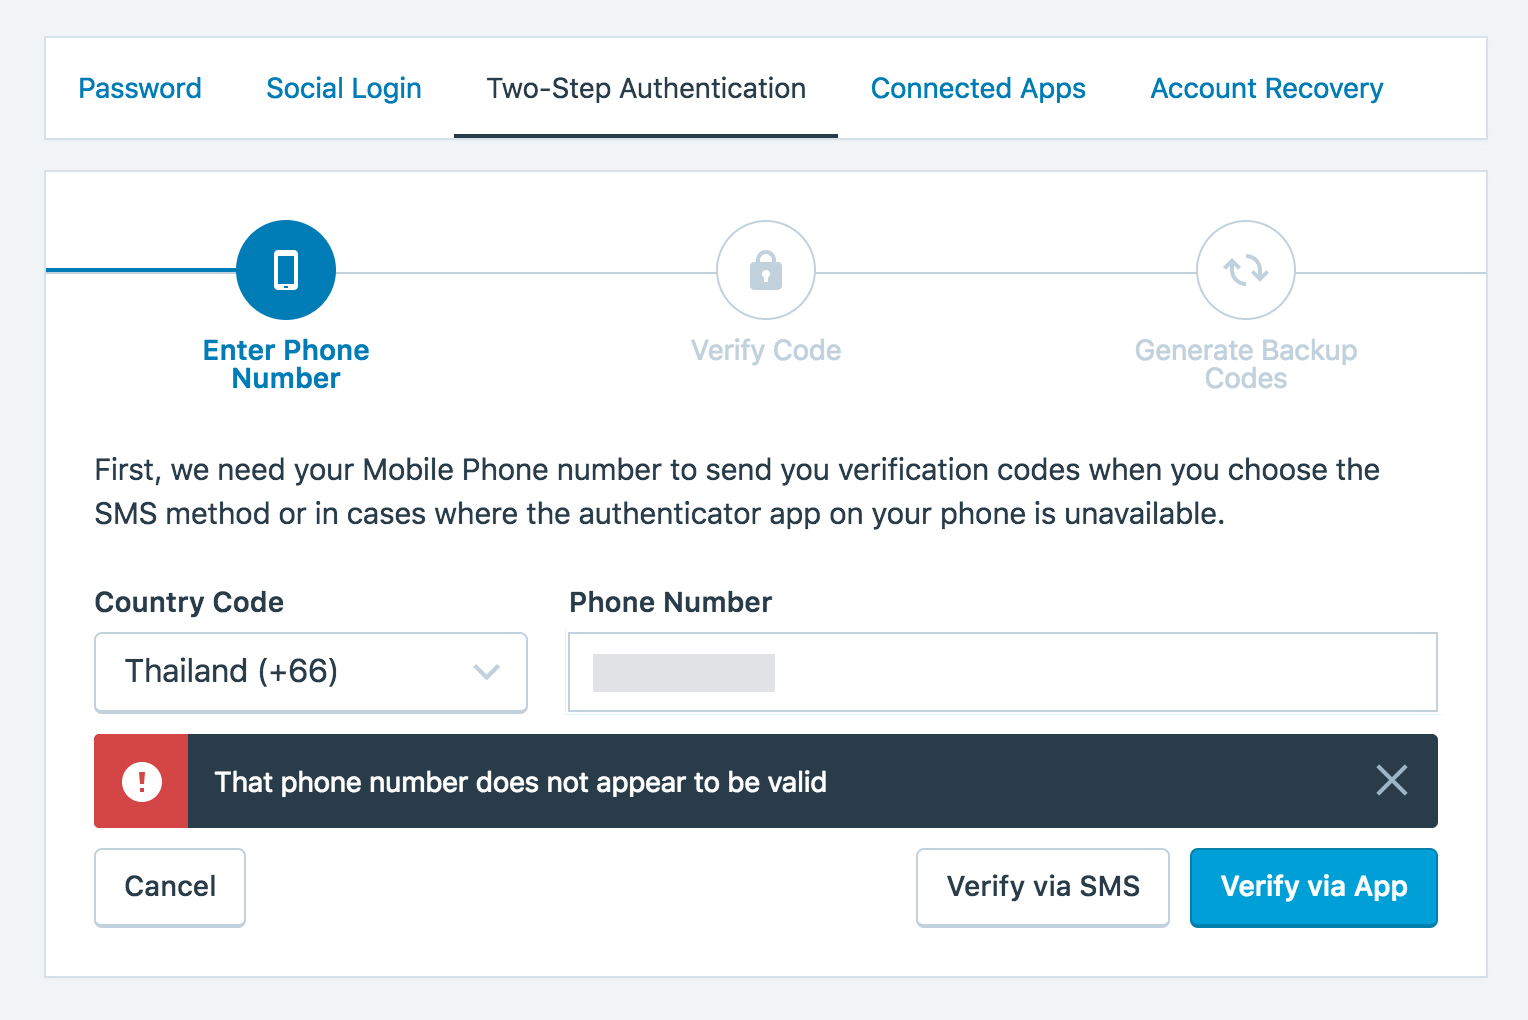 Thailand phone numbers not validating for 2FA · Issue #21862